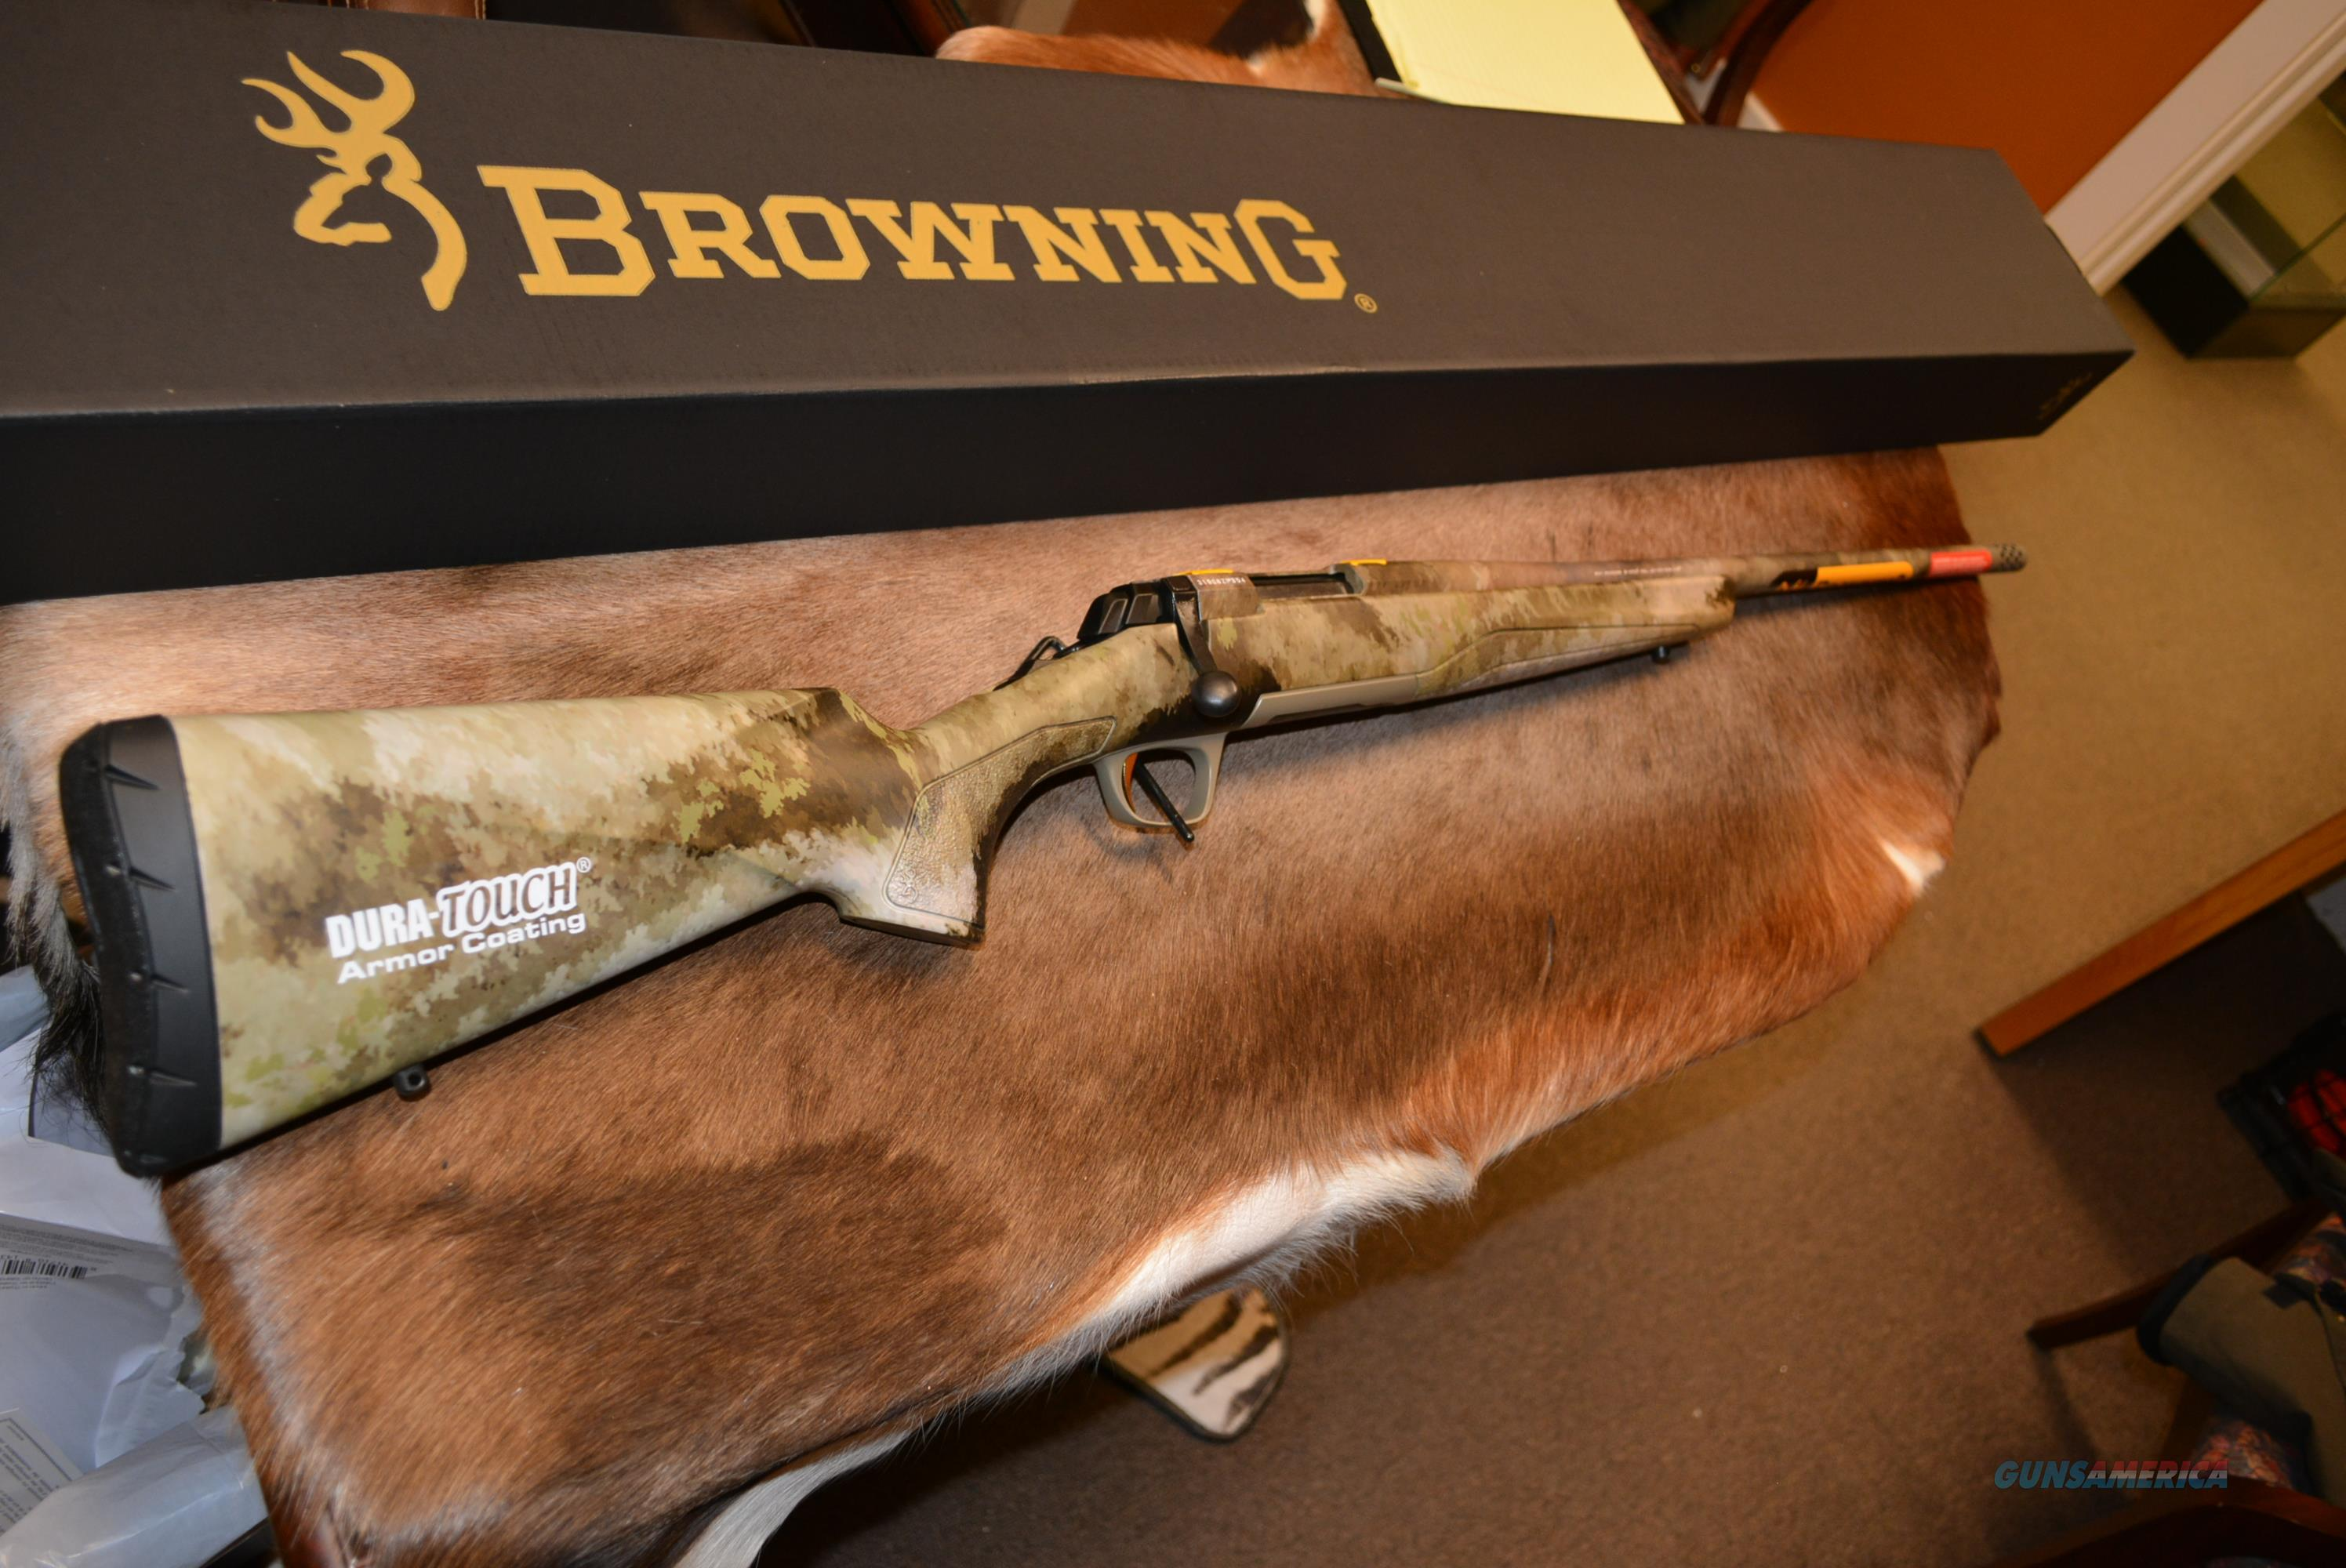 Browning X-Bolt Predator 2018 SHOT SHOW GUN 6.5 Creed  Guns > Rifles > Browning Rifles > Bolt Action > Hunting > Blue